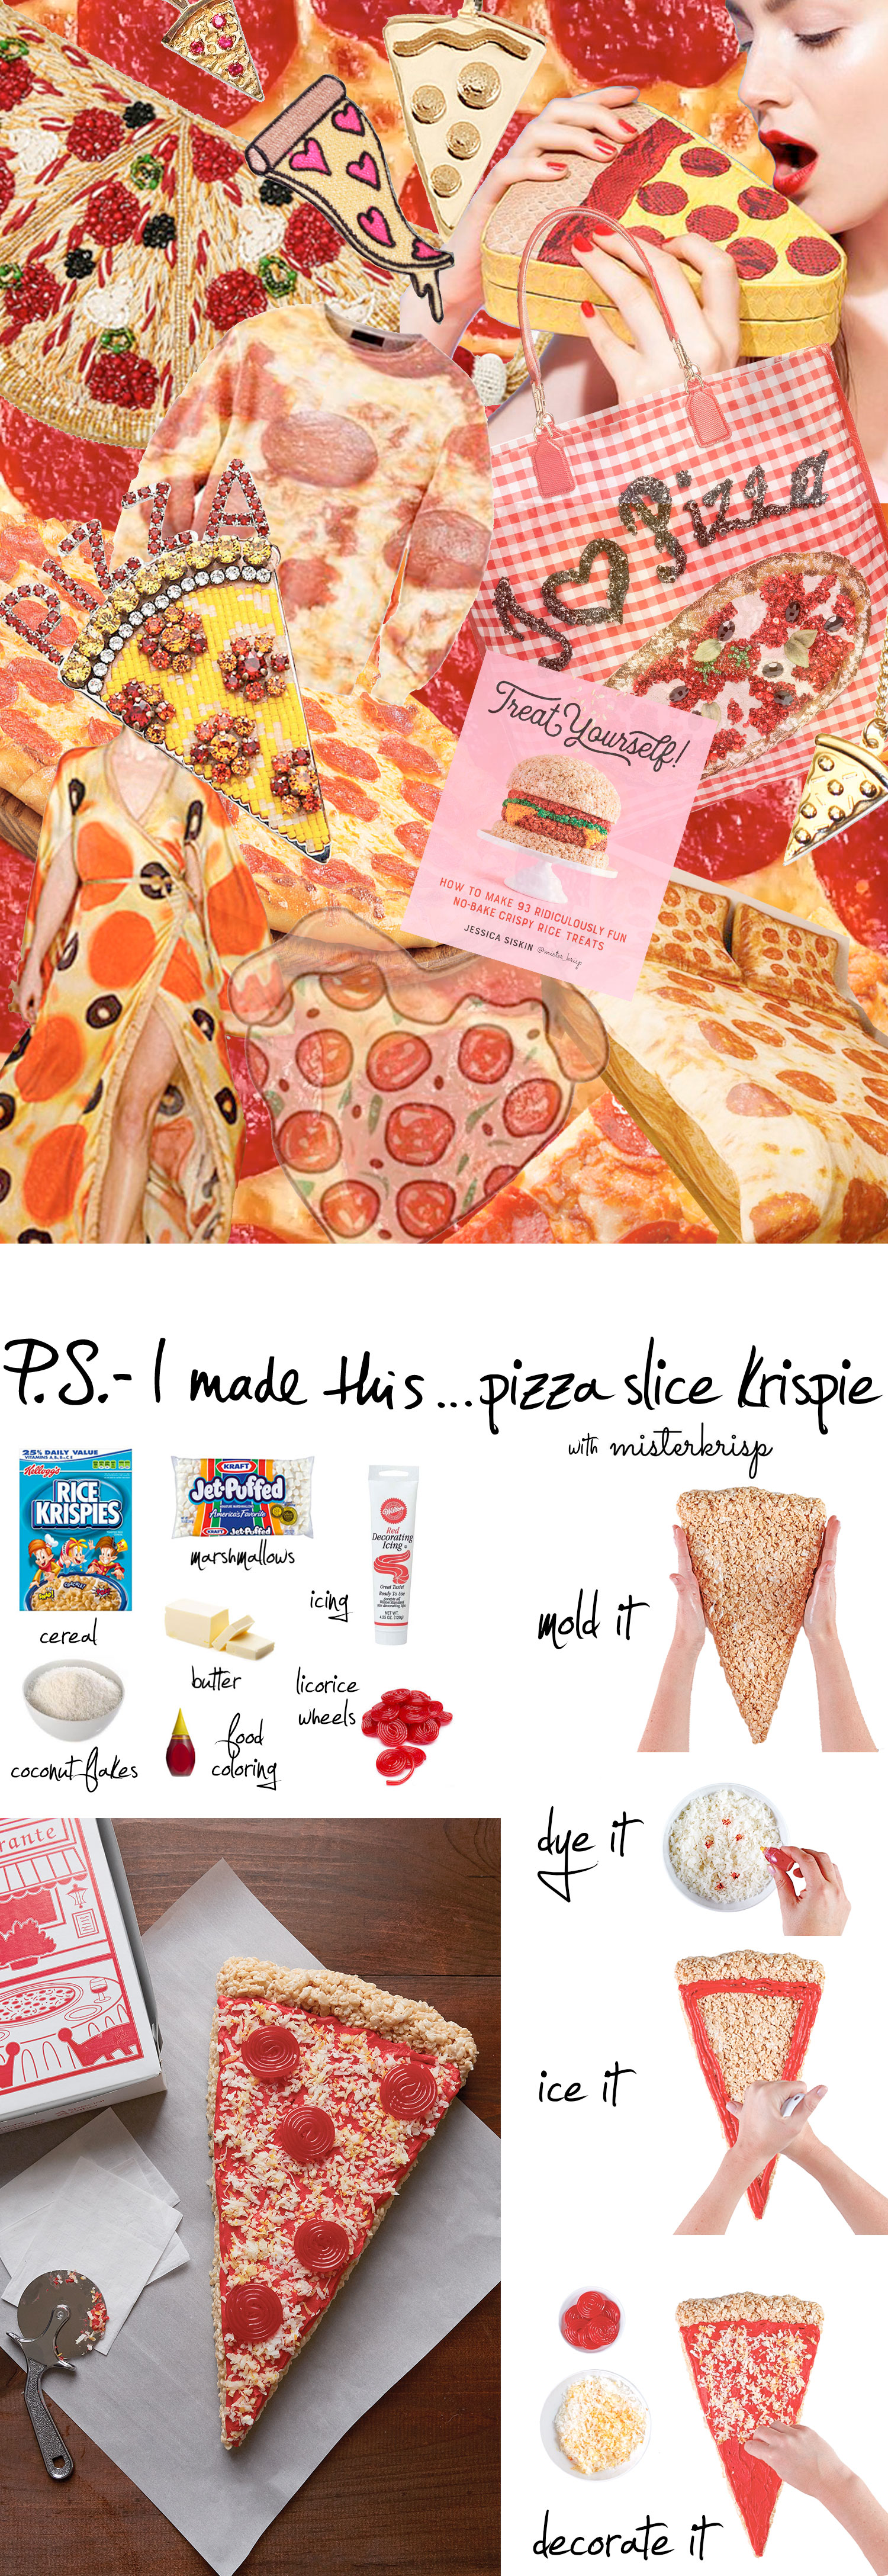 PS_Misterkrisp_Pizza